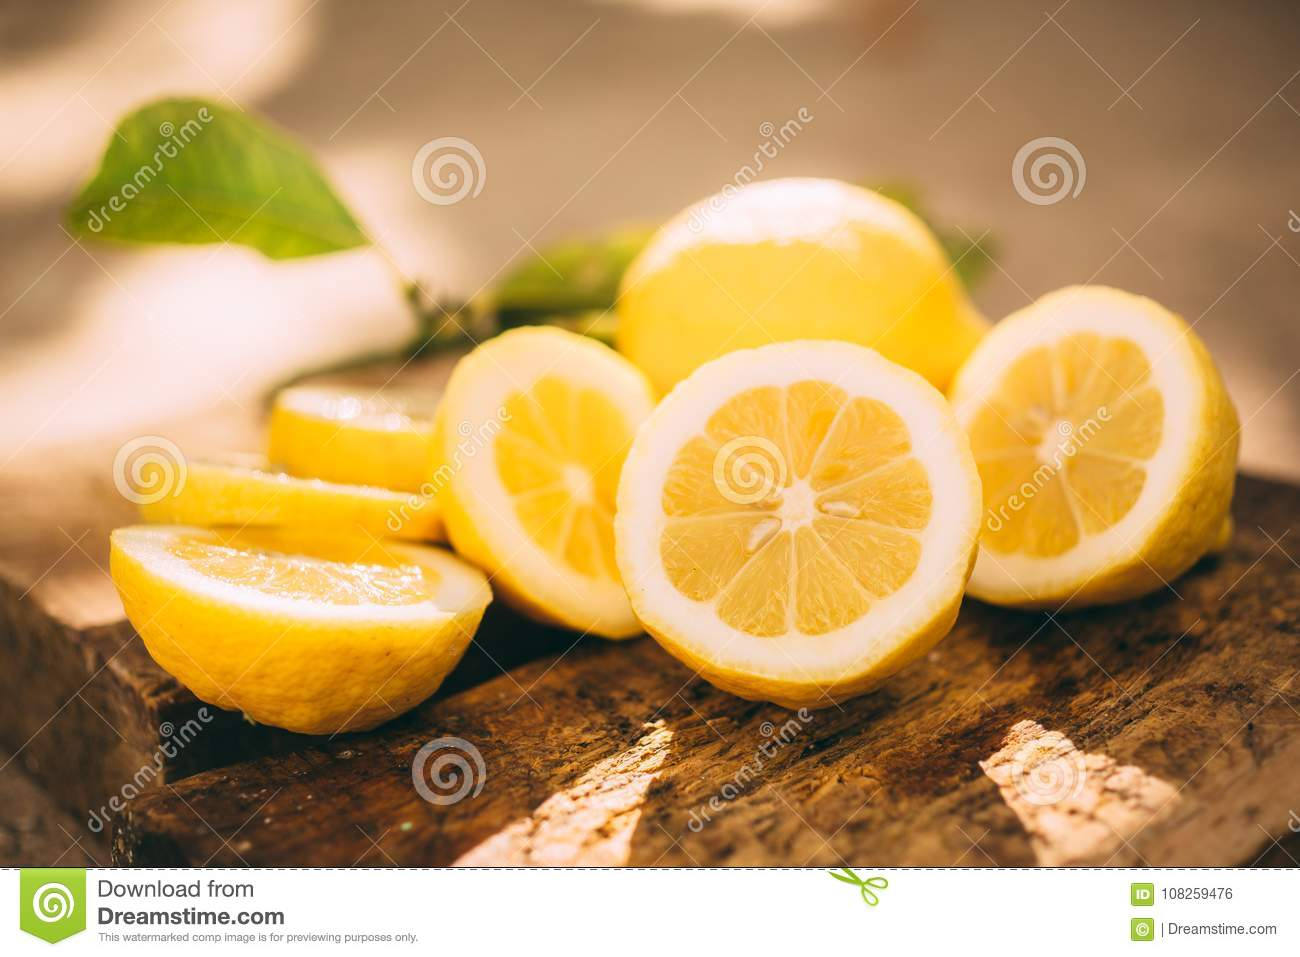 Limonade de support, citron de tranche